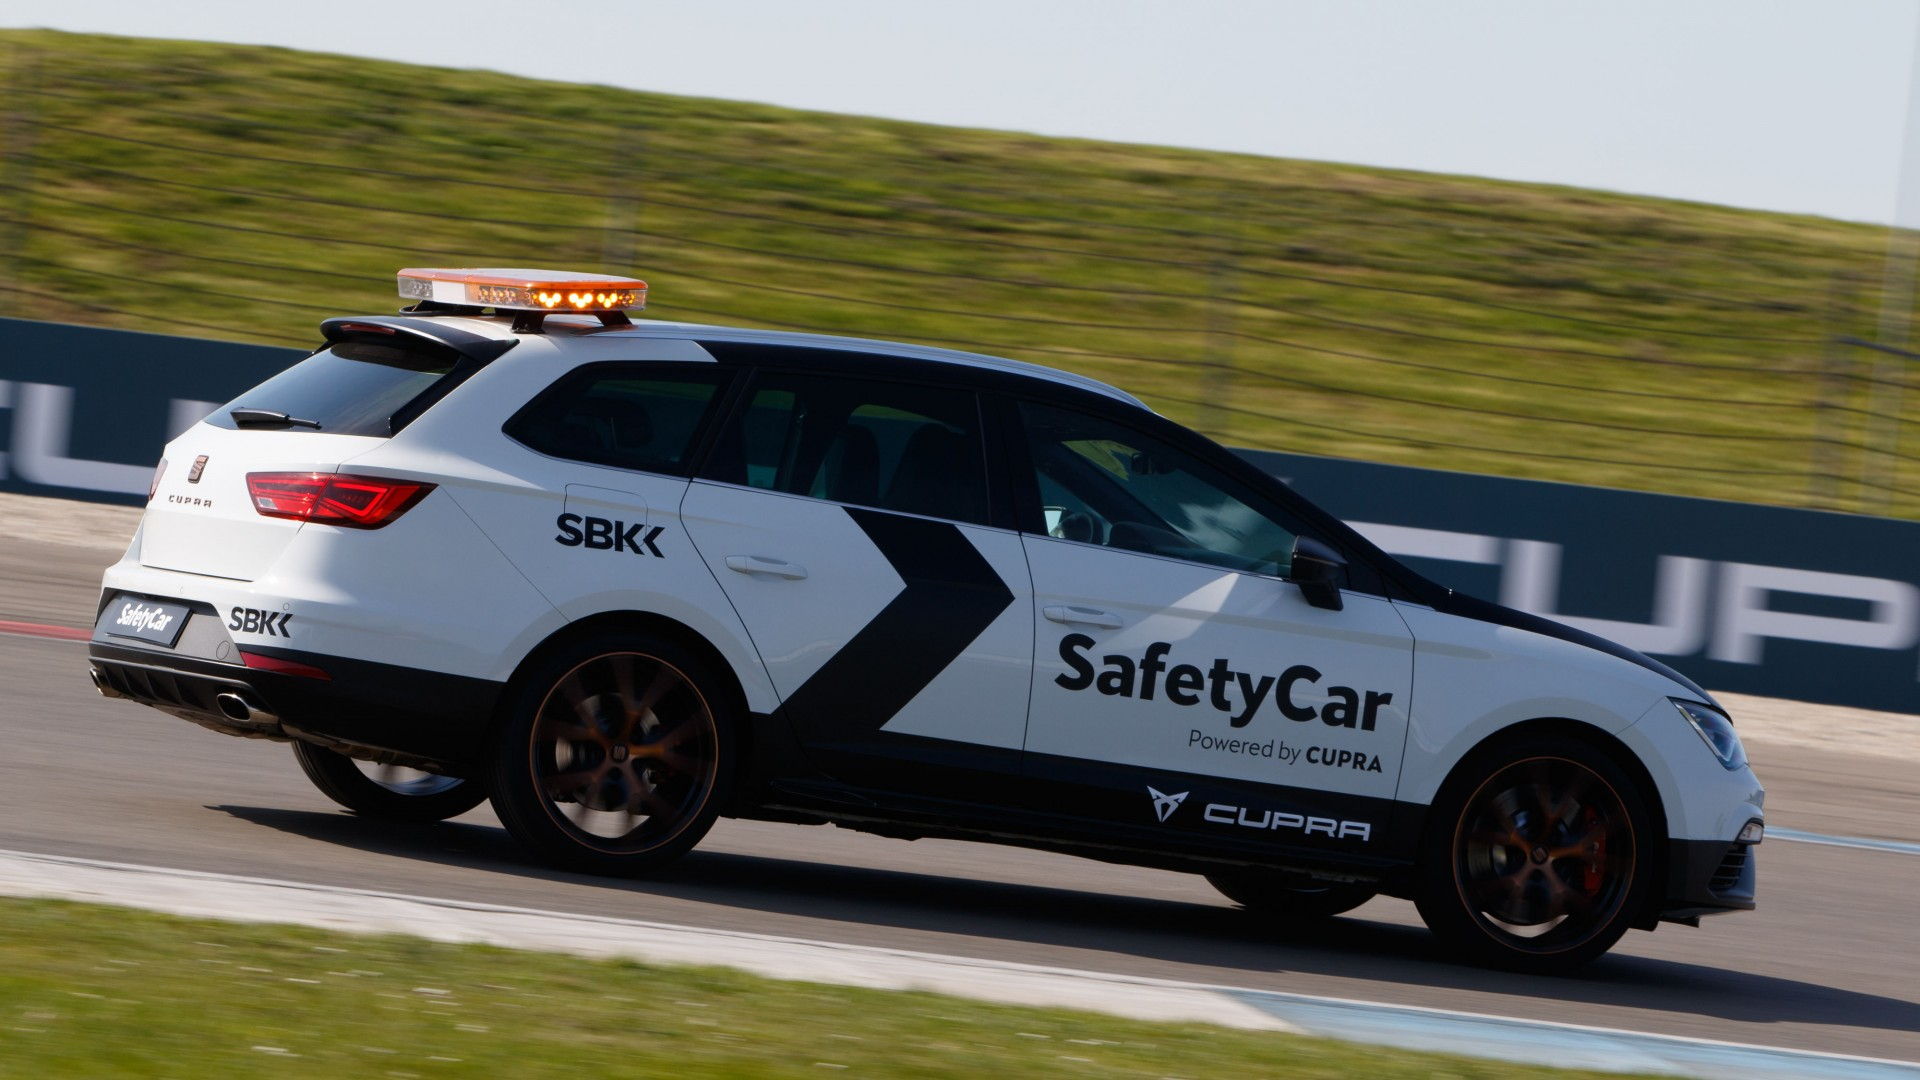 SEAT Leon Safety Car